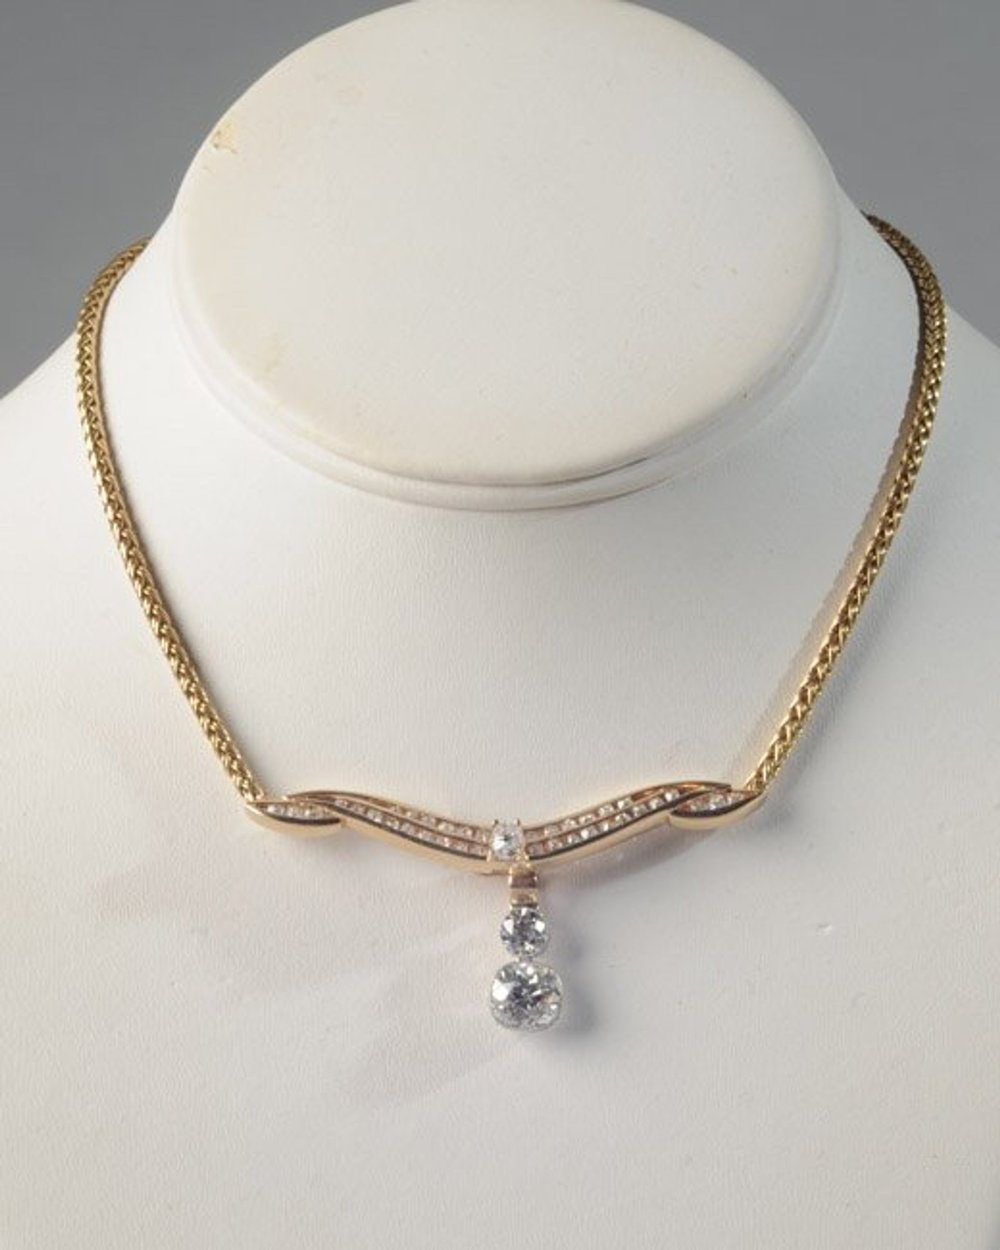 14k Gold and Diamond Necklace - Sold for $8,62512/19/2015